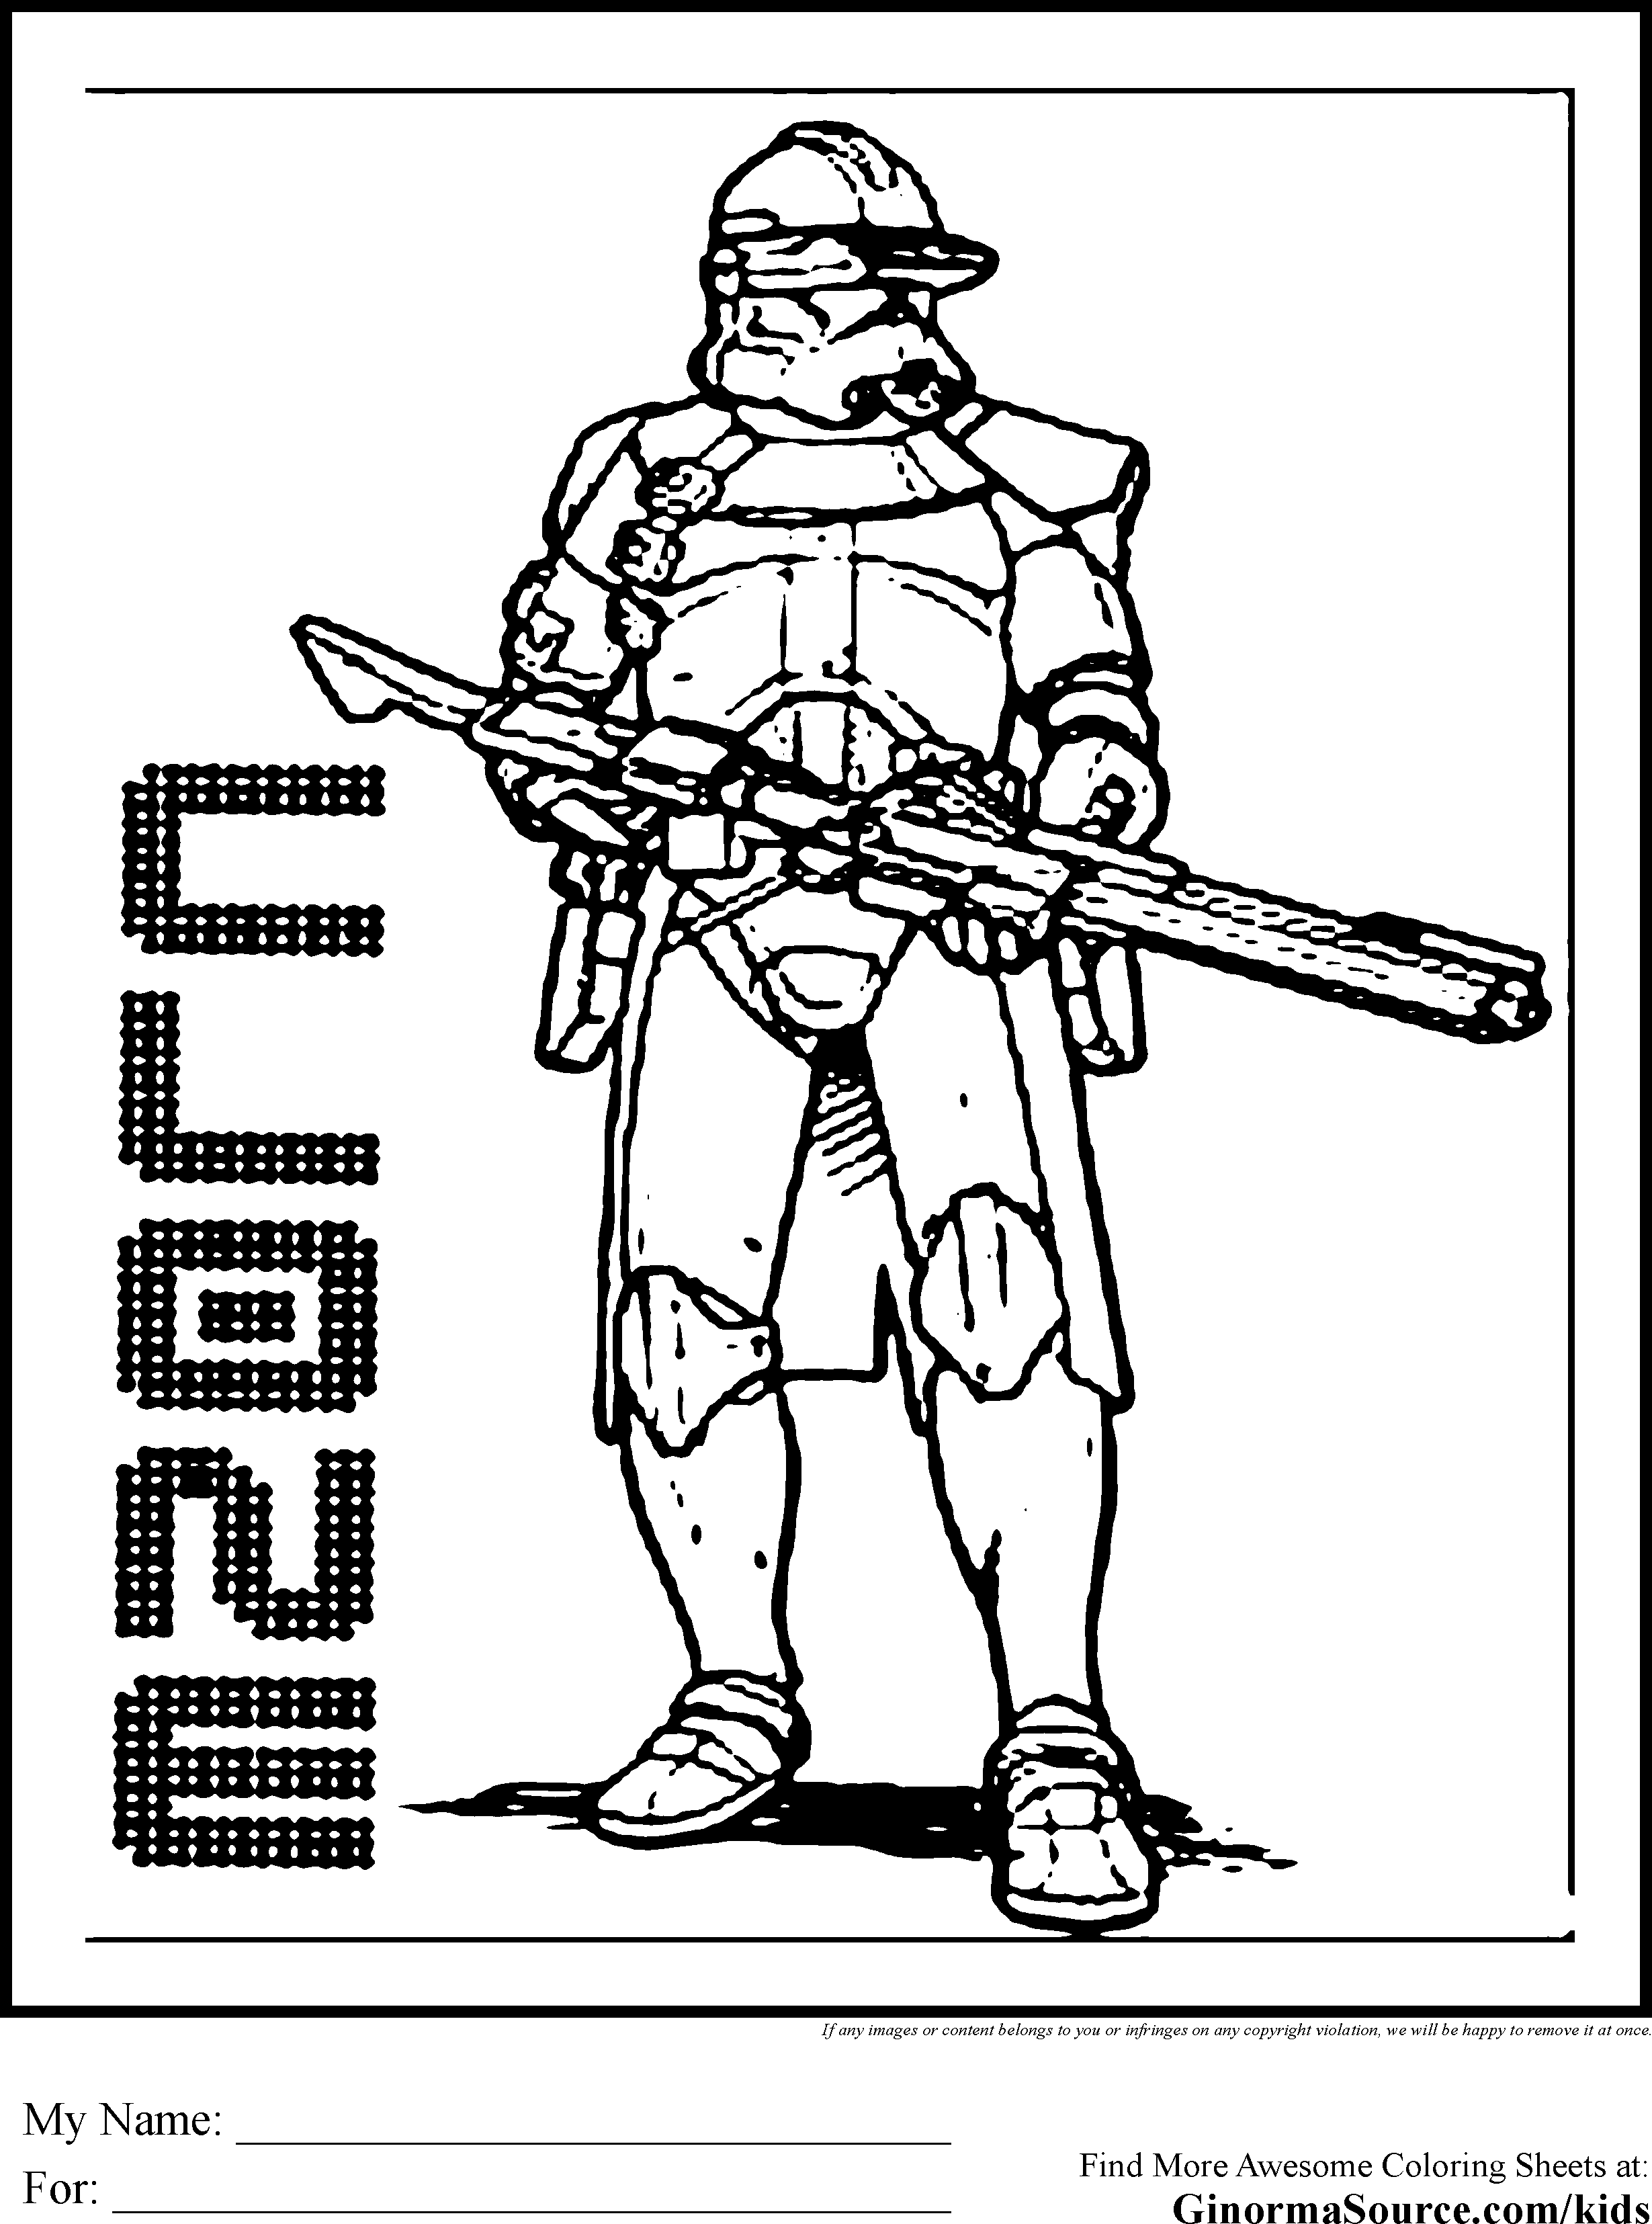 Star Wars Clone Wars Coloring Pages | COLORING PAGES FOR FREE ...